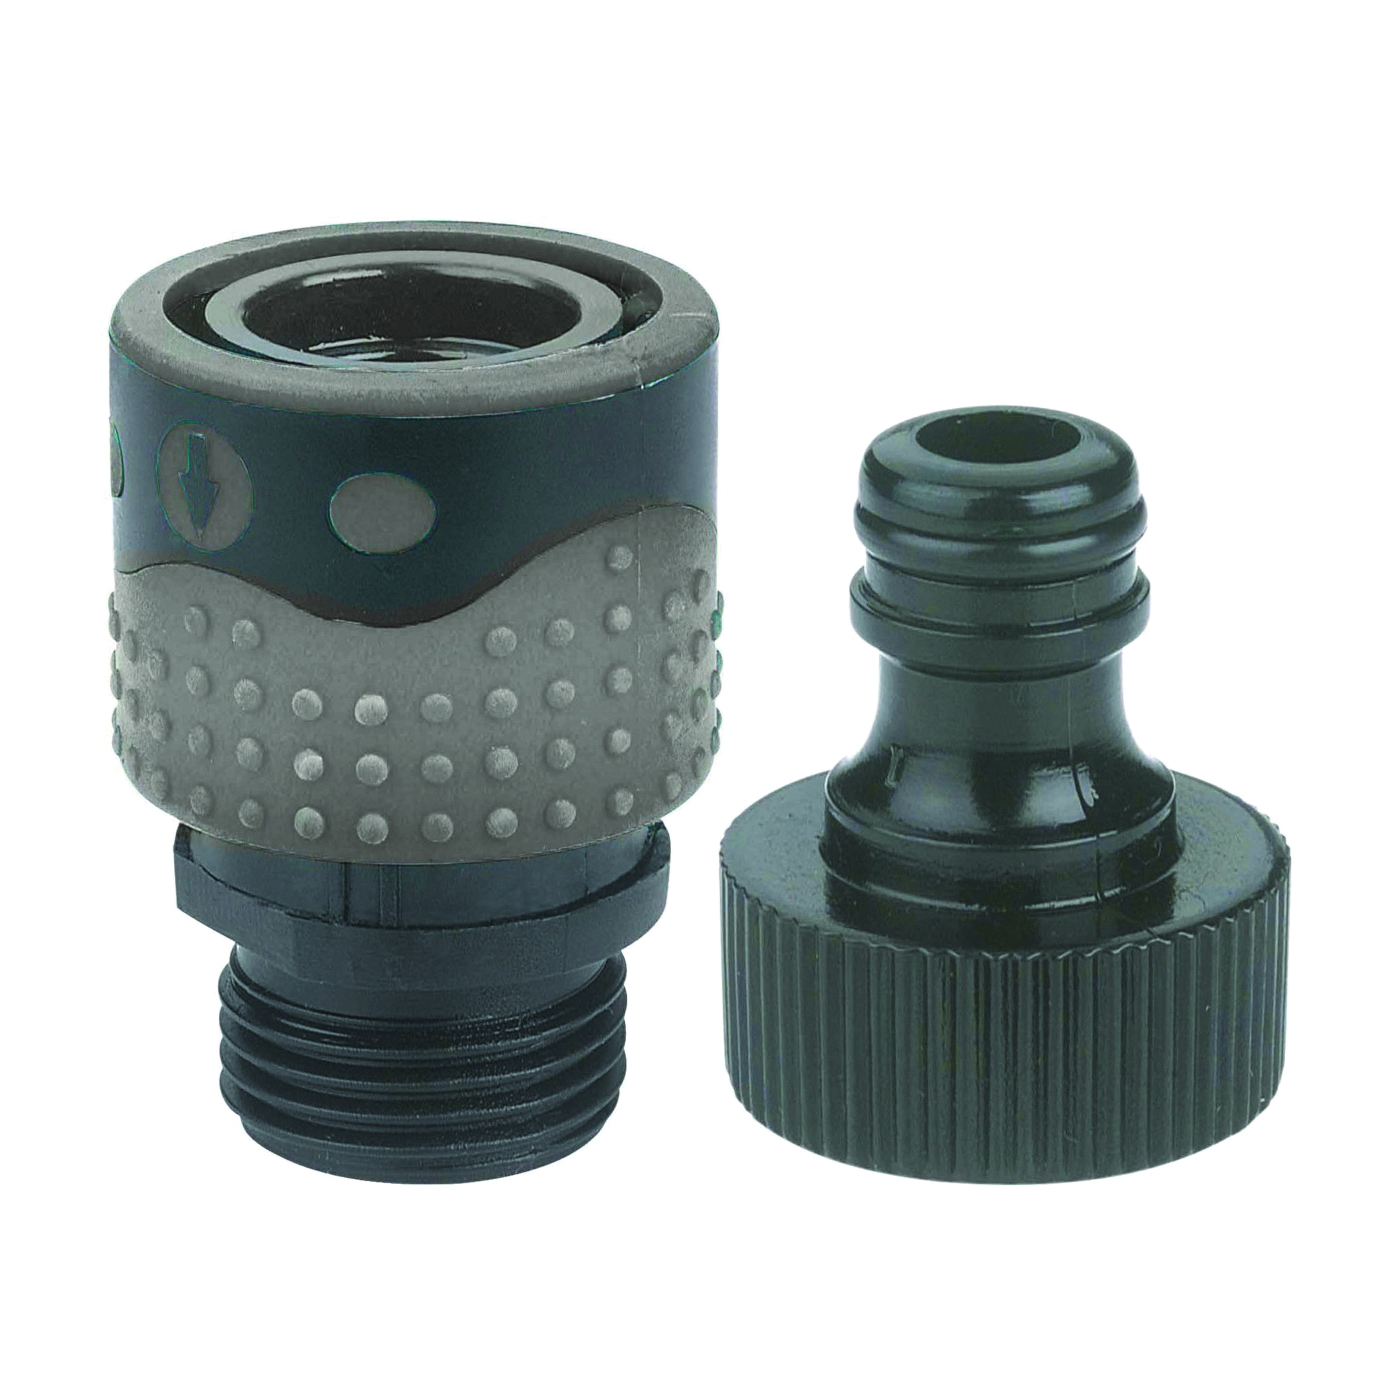 Picture of Gilmour 839004-1001 Faucet Quick Connector Set, Polymer